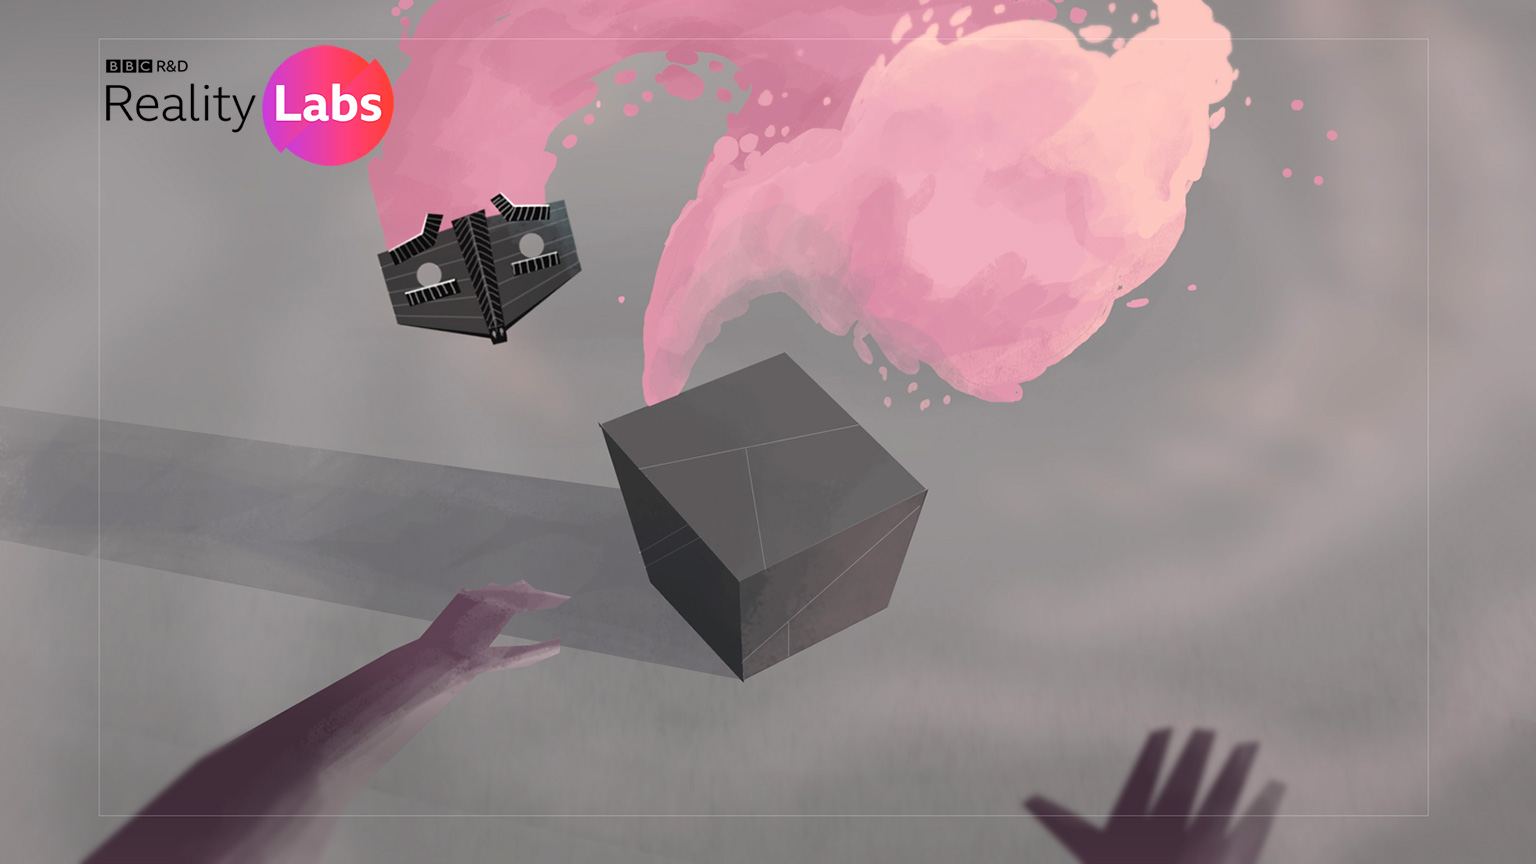 A scene from a virtual reality trial - a user's hands in virtual reality move towards a box with a face mask emerges from within followed by a trail of pink smoke.